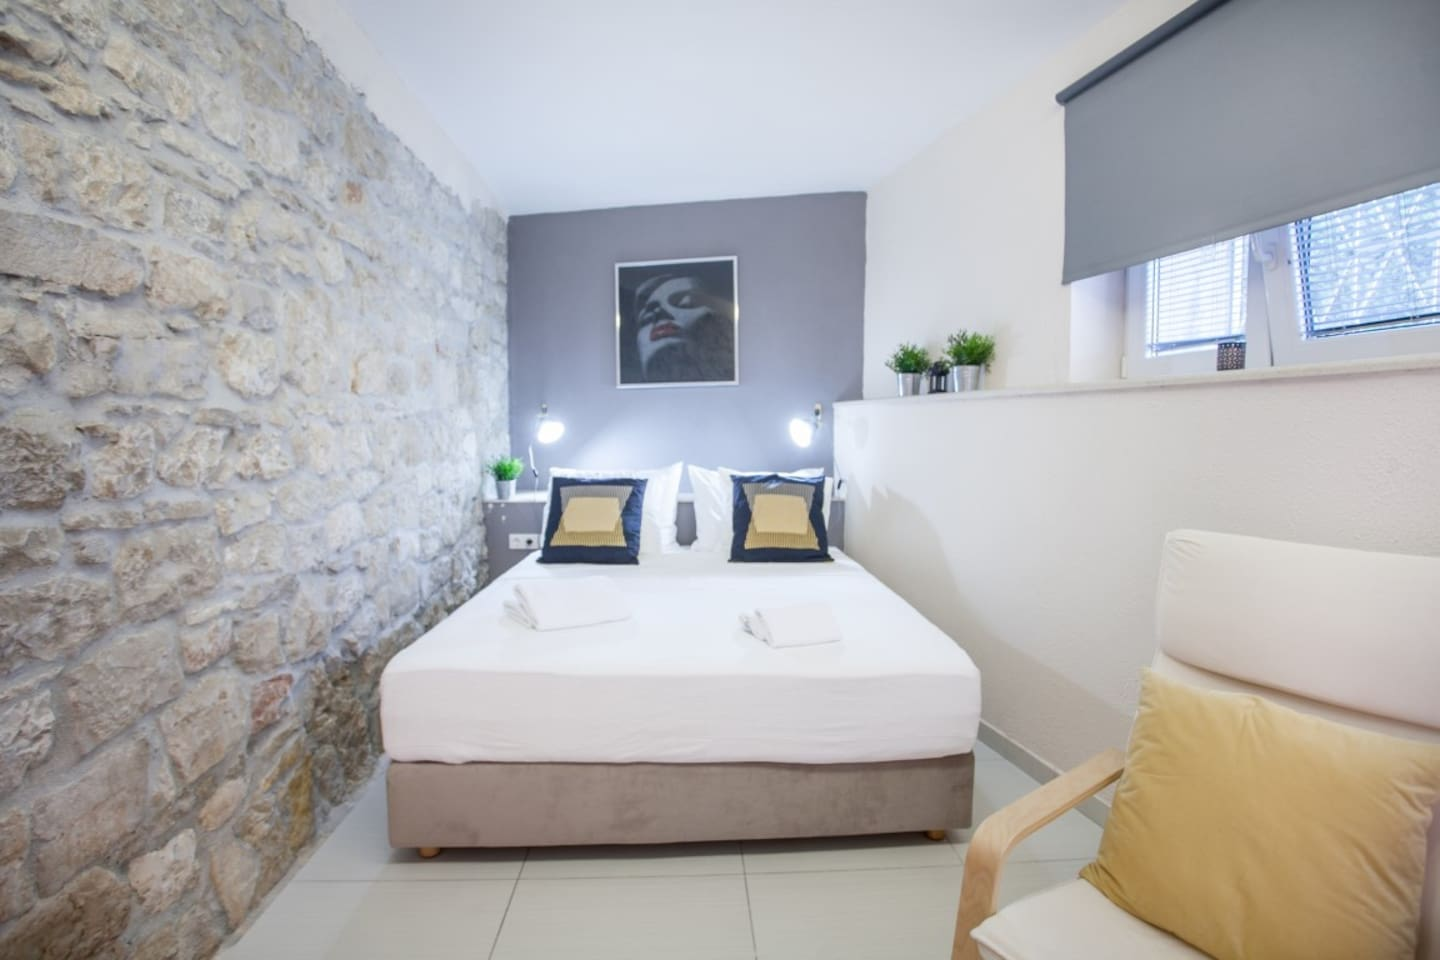 Lovely studio apartment Emotha, Trogir (A3)